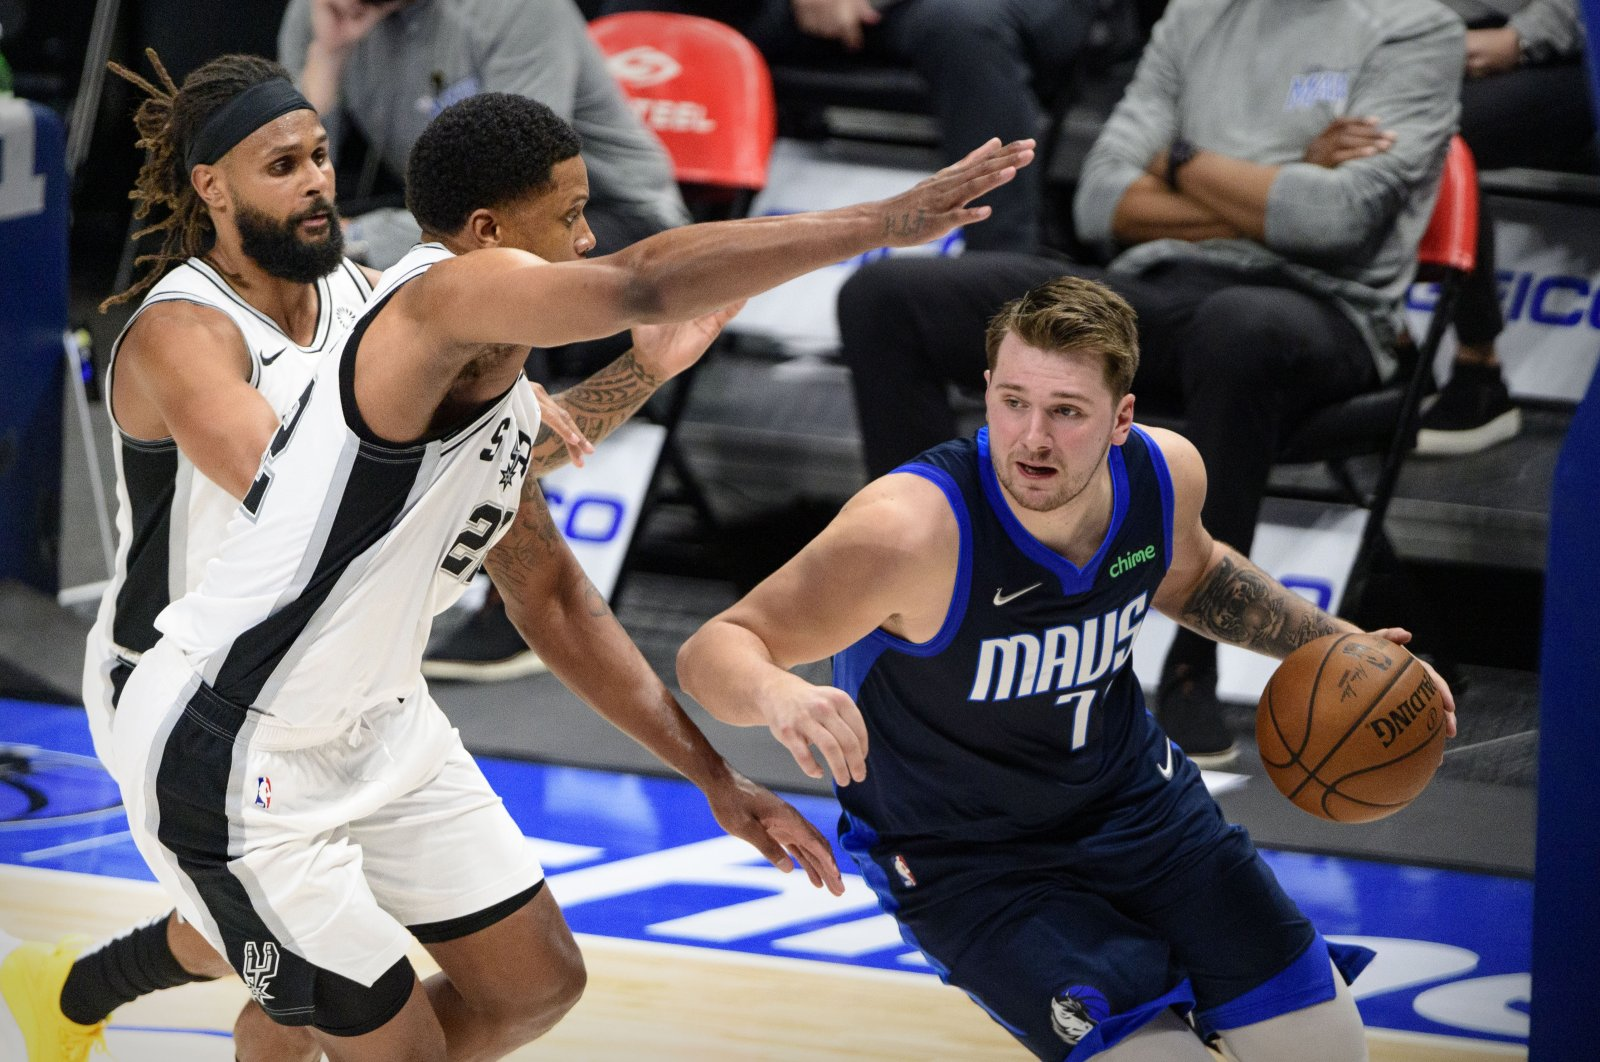 Dallas Mavericks guard Luka Doncic (R) dribbles the ball past San Antonio Spurs forward Rudy Gay (L) during an NBA game at the American Airlines Center, Dallas, Texas, March 10, 2021. (Reuters Photo)